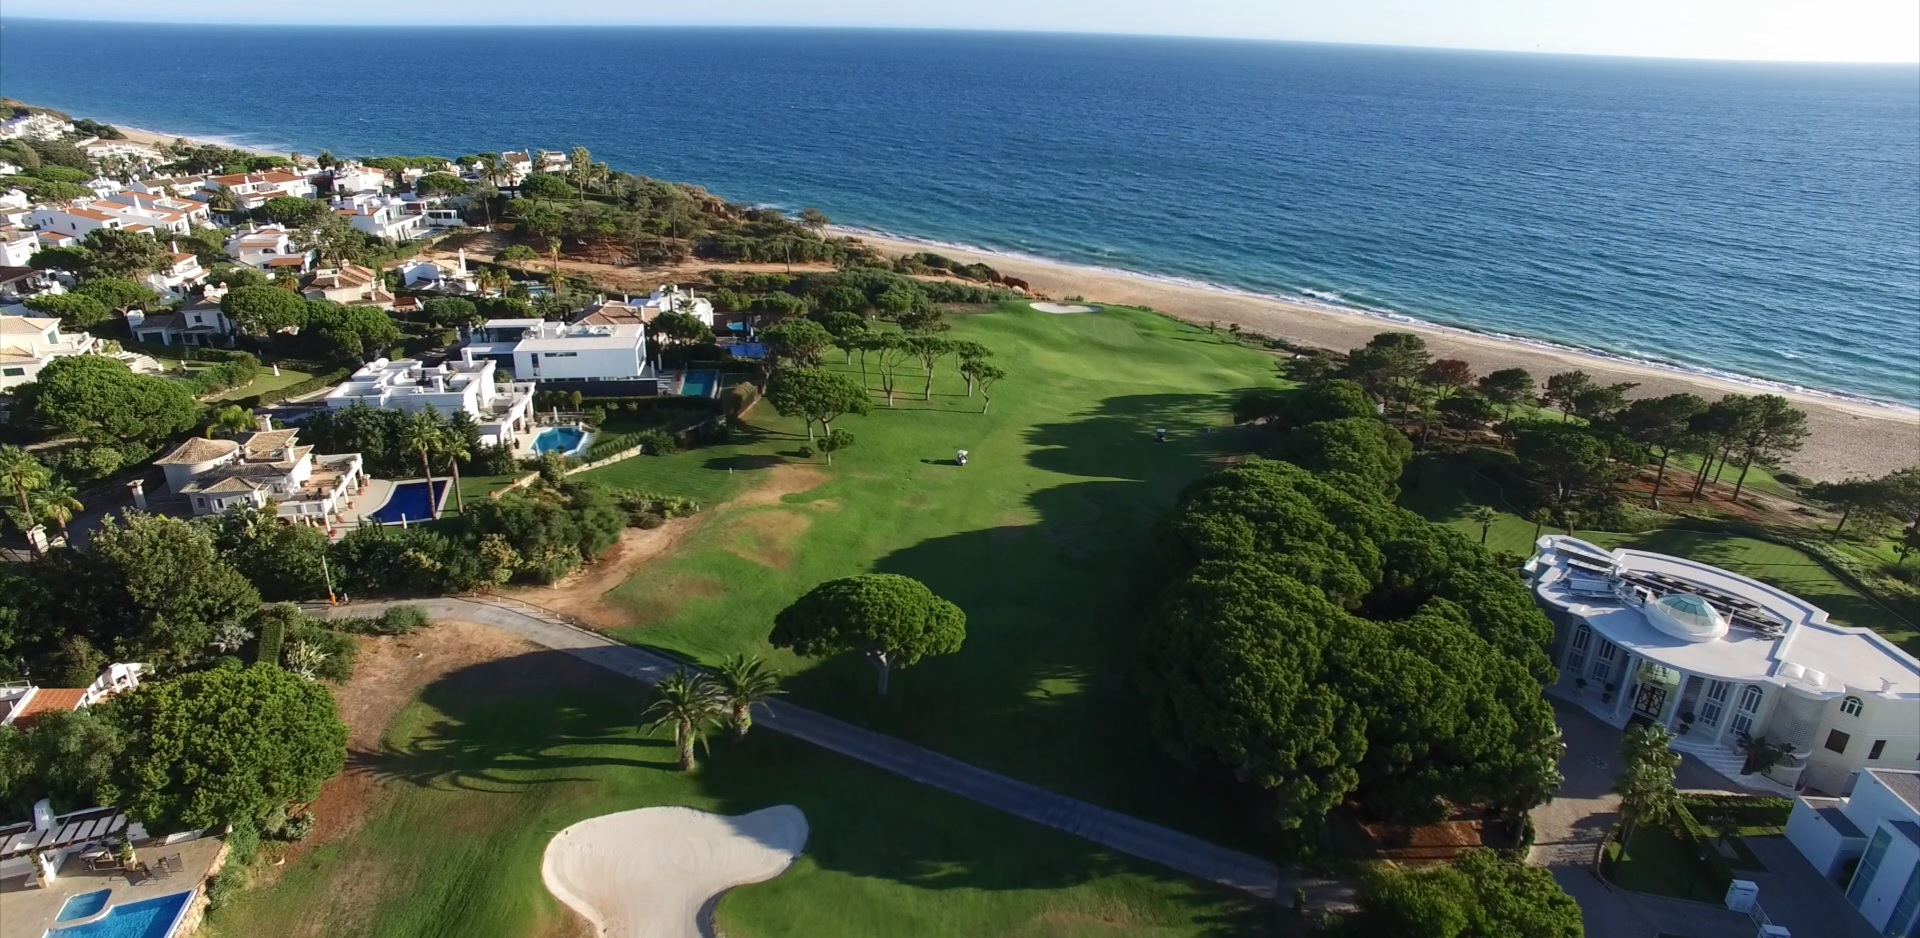 L'Immobilier à Almancil - Engel&Völkers-Quinta do Lago - Vale do Lobo (3).jpg